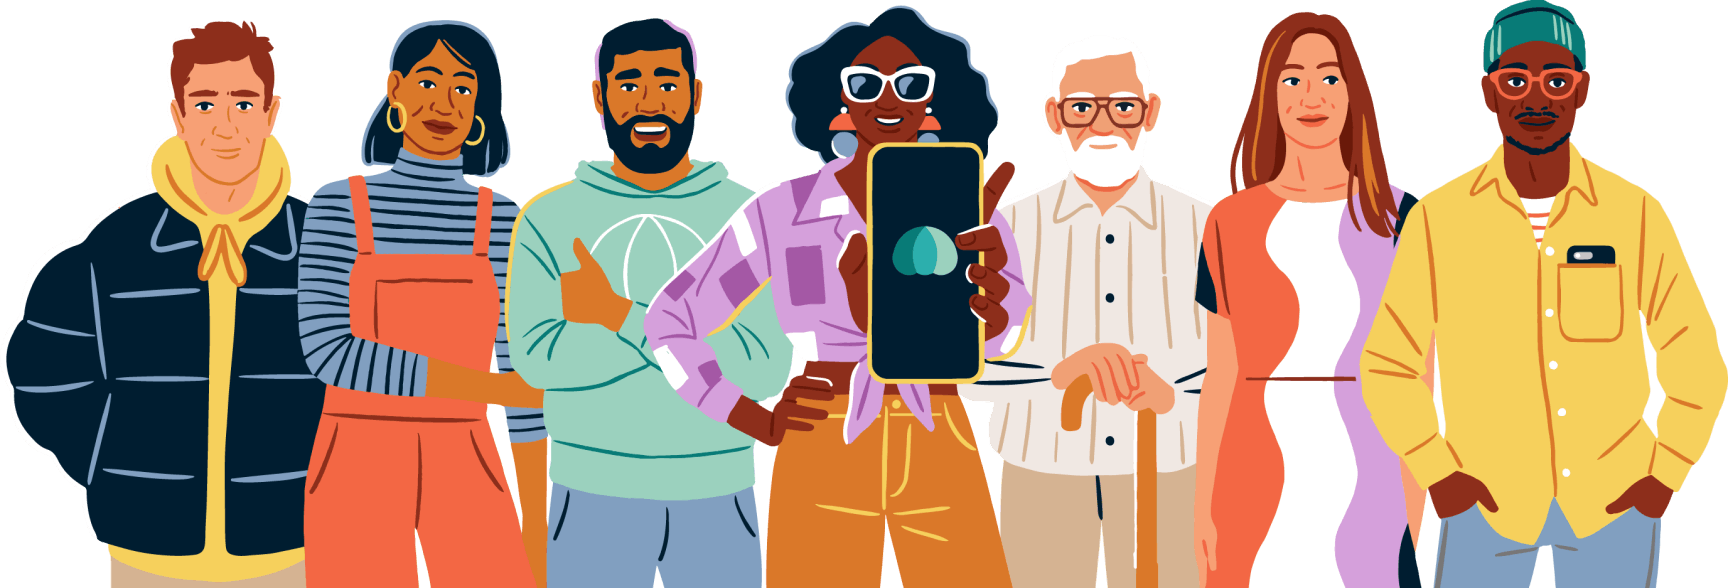 Illustration of a group of people with the woman standing center holding a phone displaying the Parachute logo.